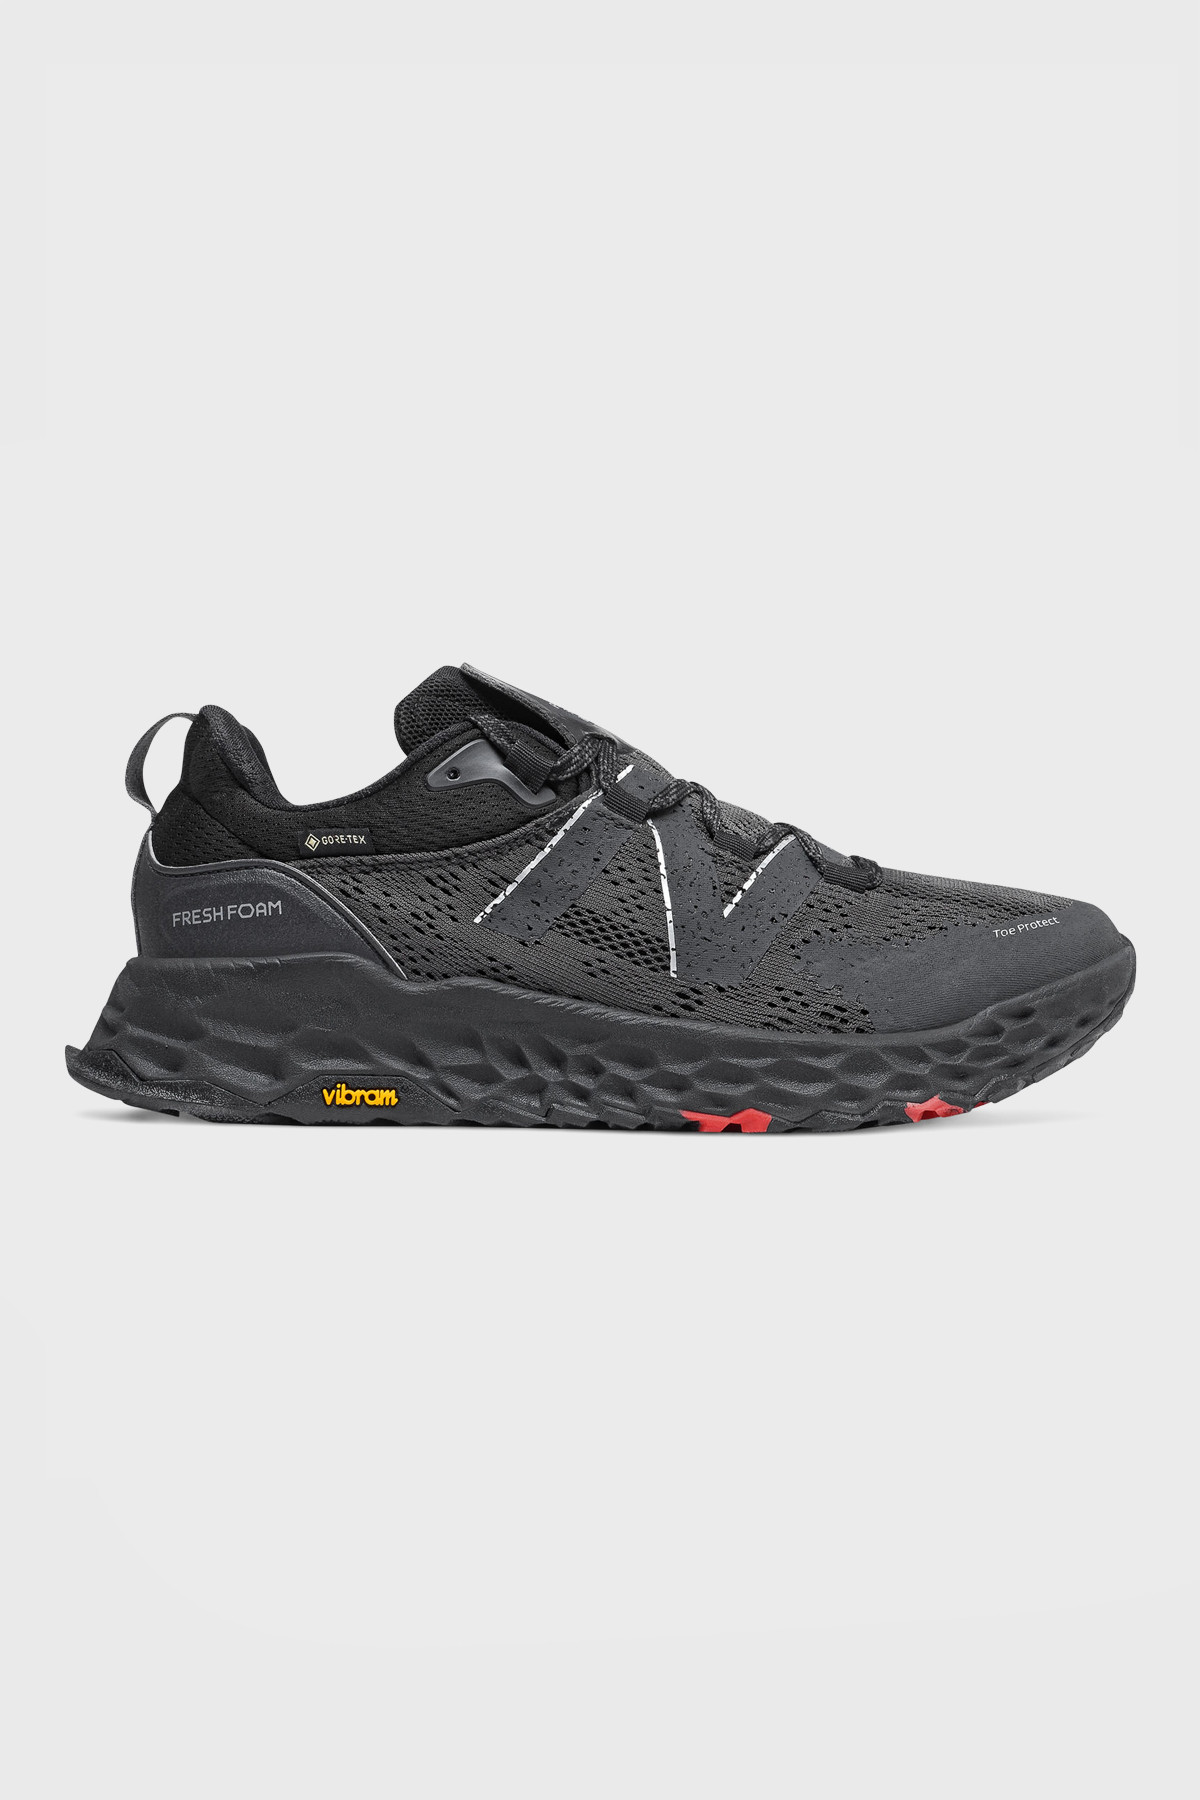 New Balance - Fresh Foam Hierro V5 GTX - Black